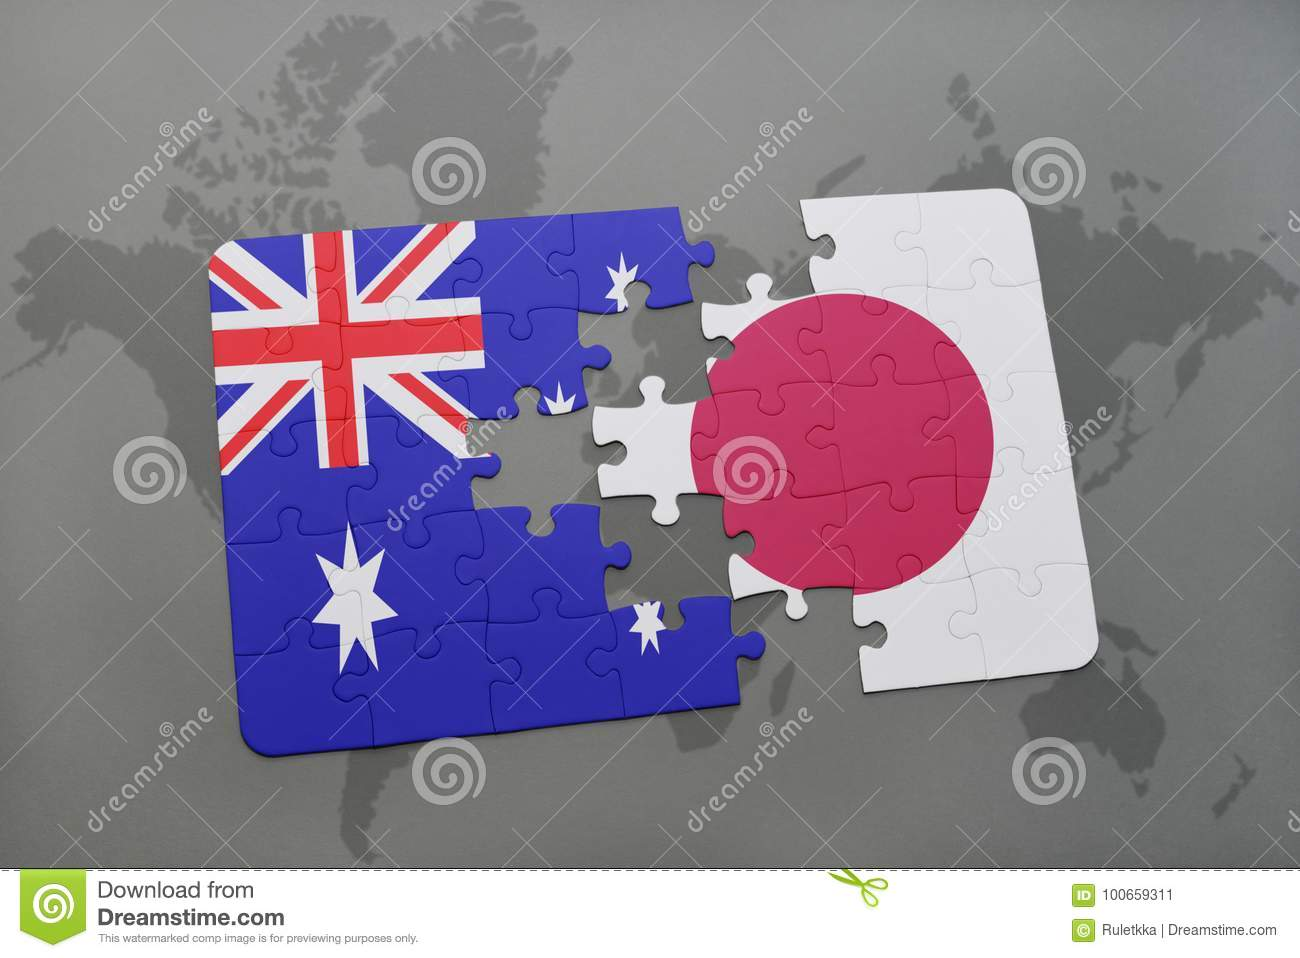 Puzzle with the national flag of australia and japan on a world map download puzzle with the national flag of australia and japan on a world map background gumiabroncs Gallery